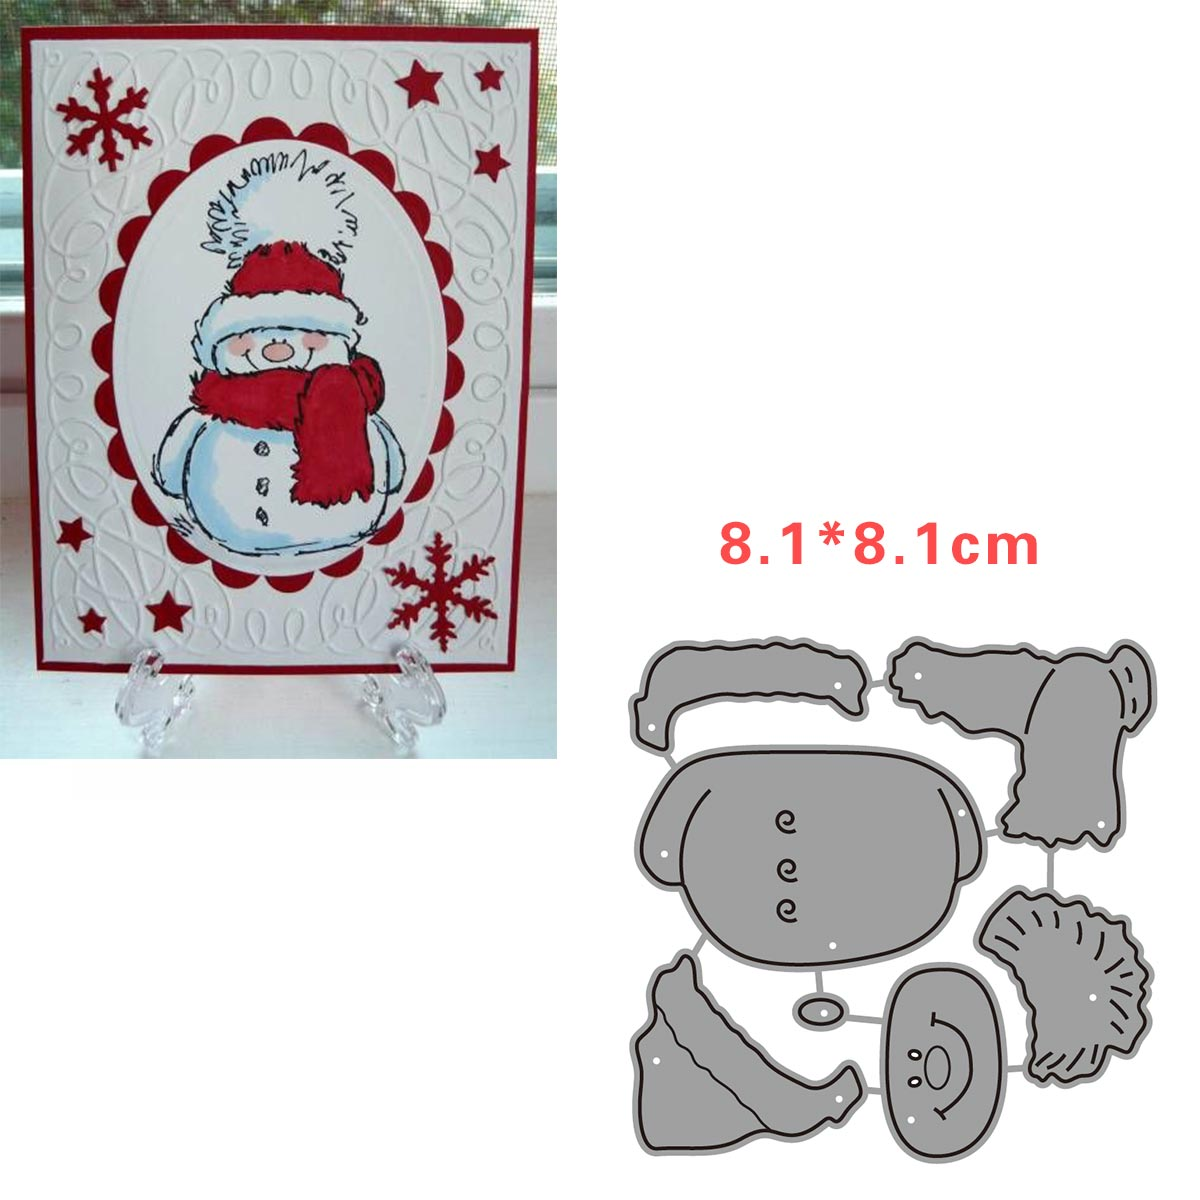 Snowman Christmas Accessories Alinacrafts Metal Cutting Dies Scrapbooking Dies Cut For Card Making Snow Decoration 2019 New Dies